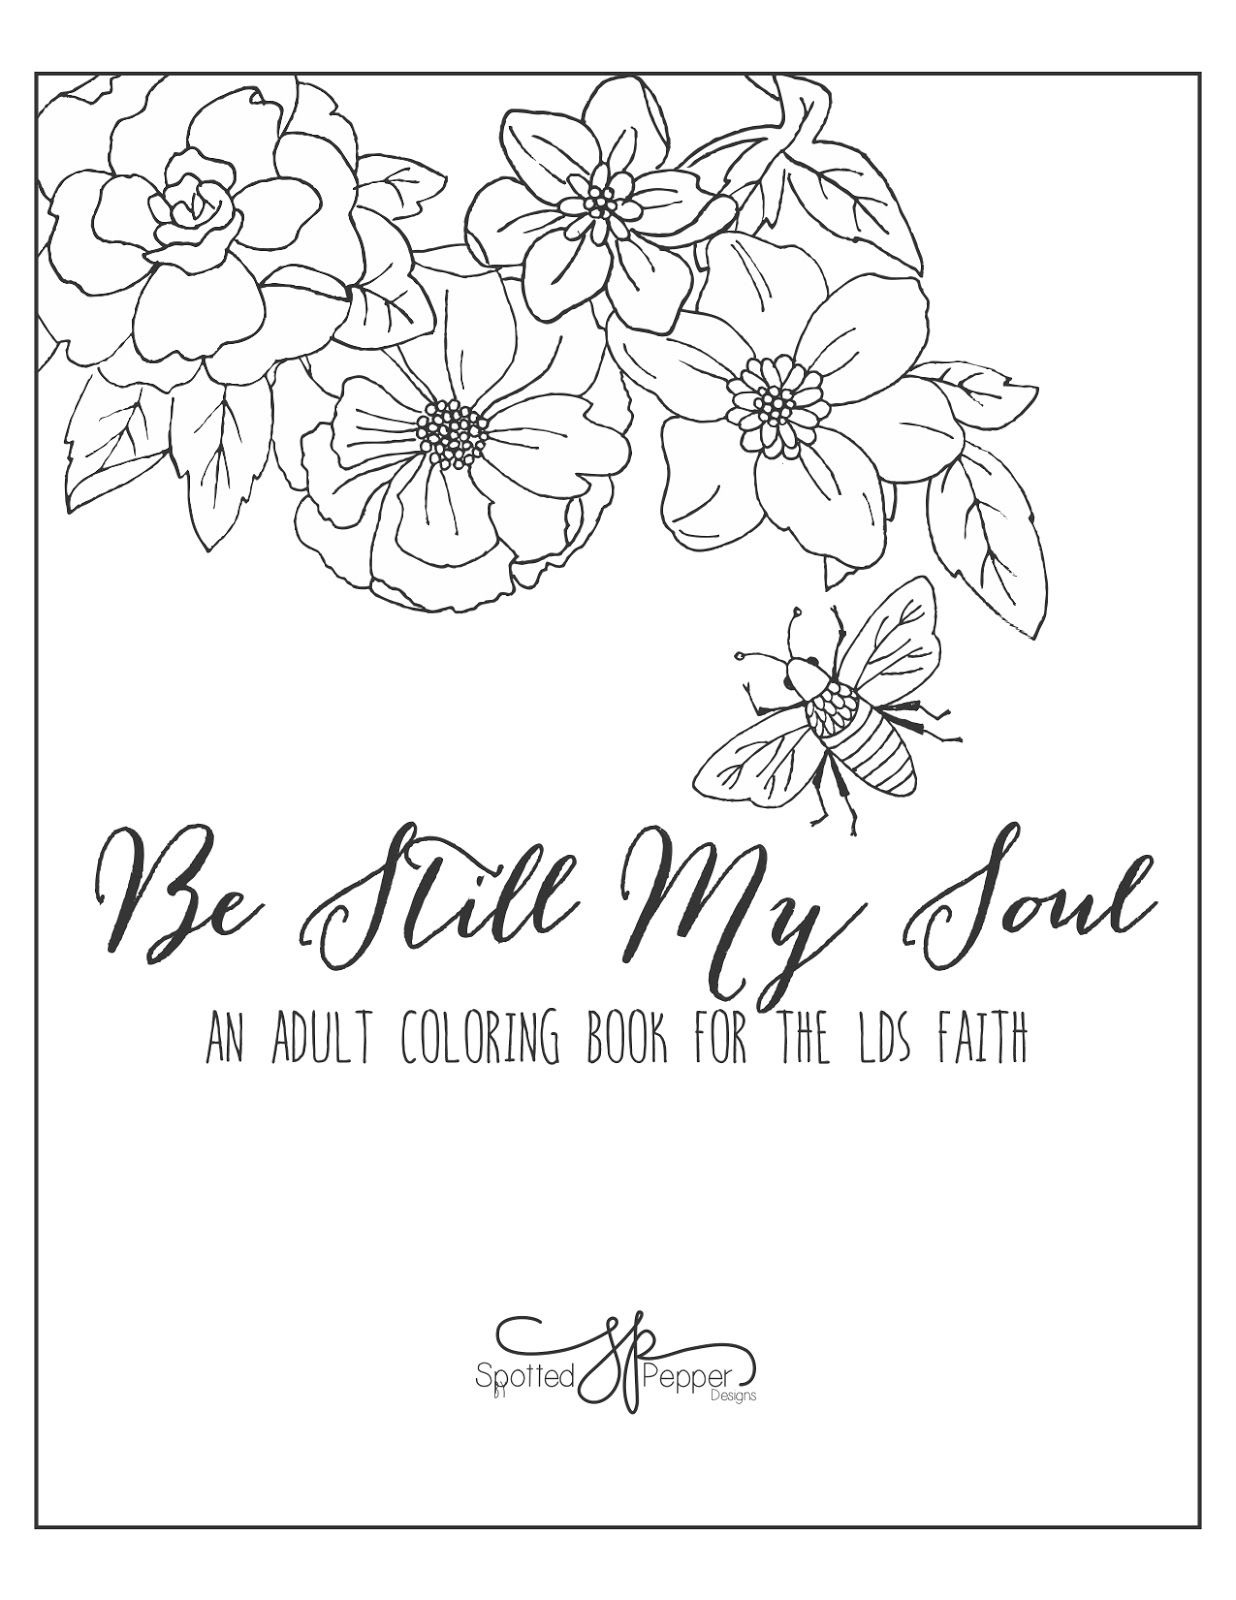 Spotted Pepper Designs: Be Still My Soul (a coloring book ...